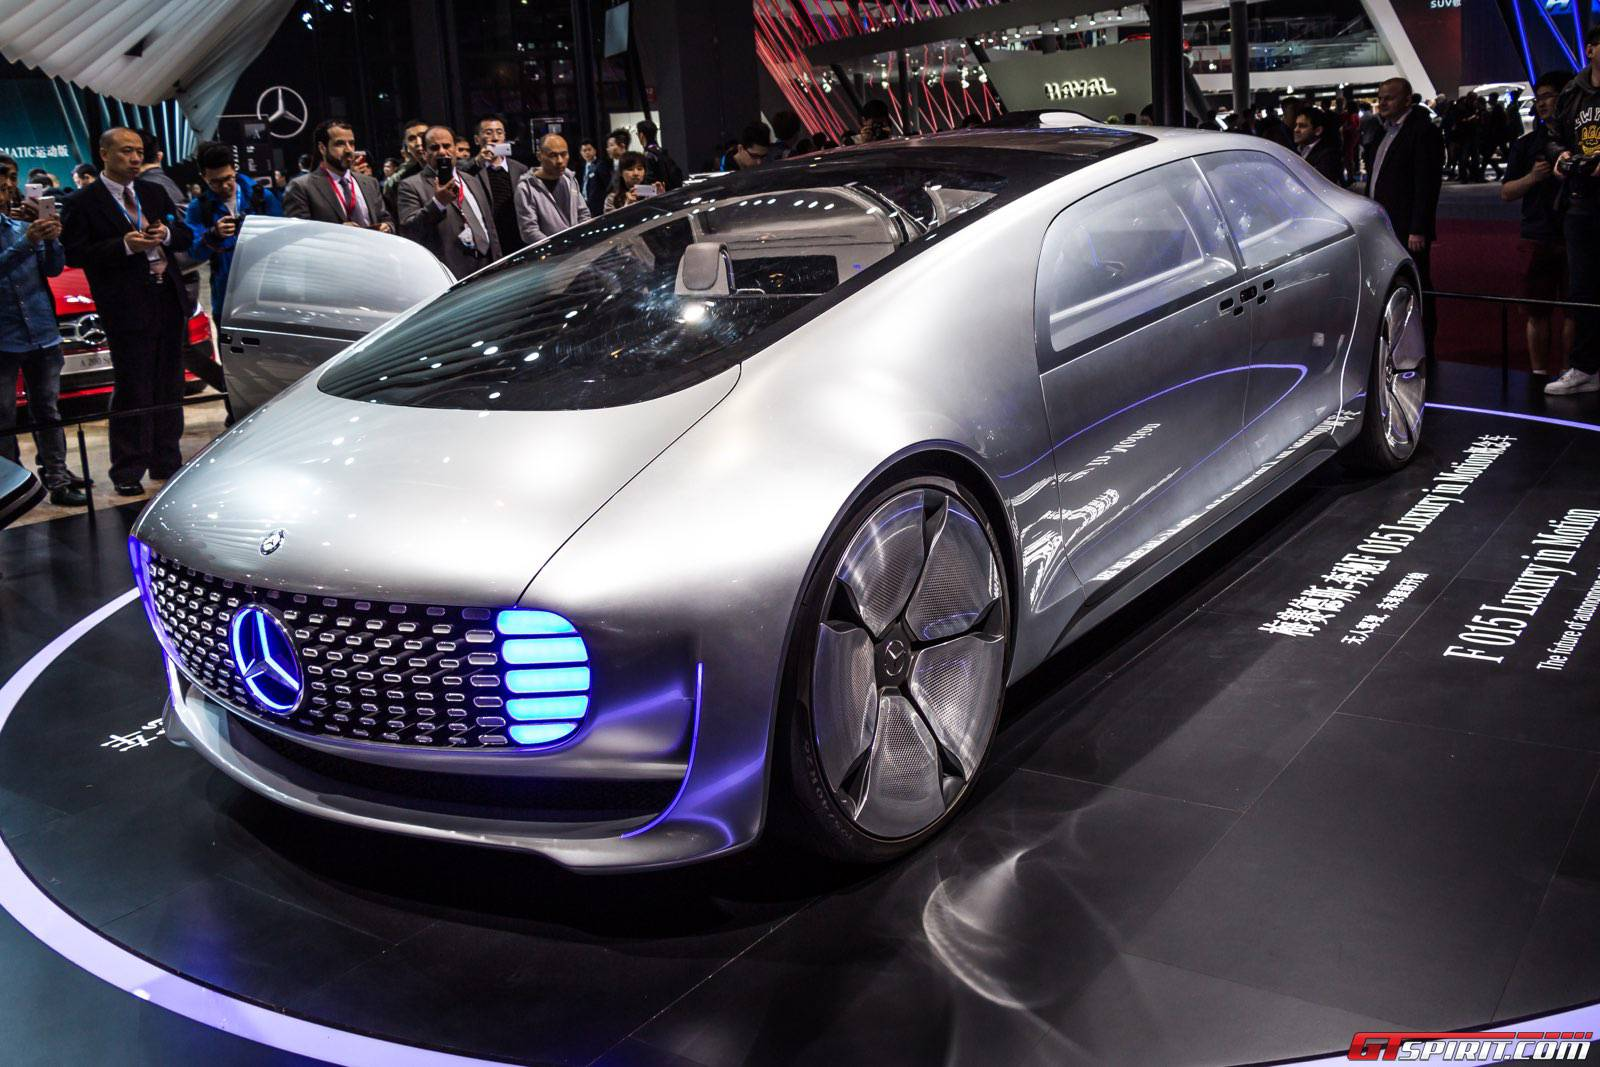 Shanghai 2015 mercedes benz f015 luxury in motion gtspirit - Shanghai auto show ...